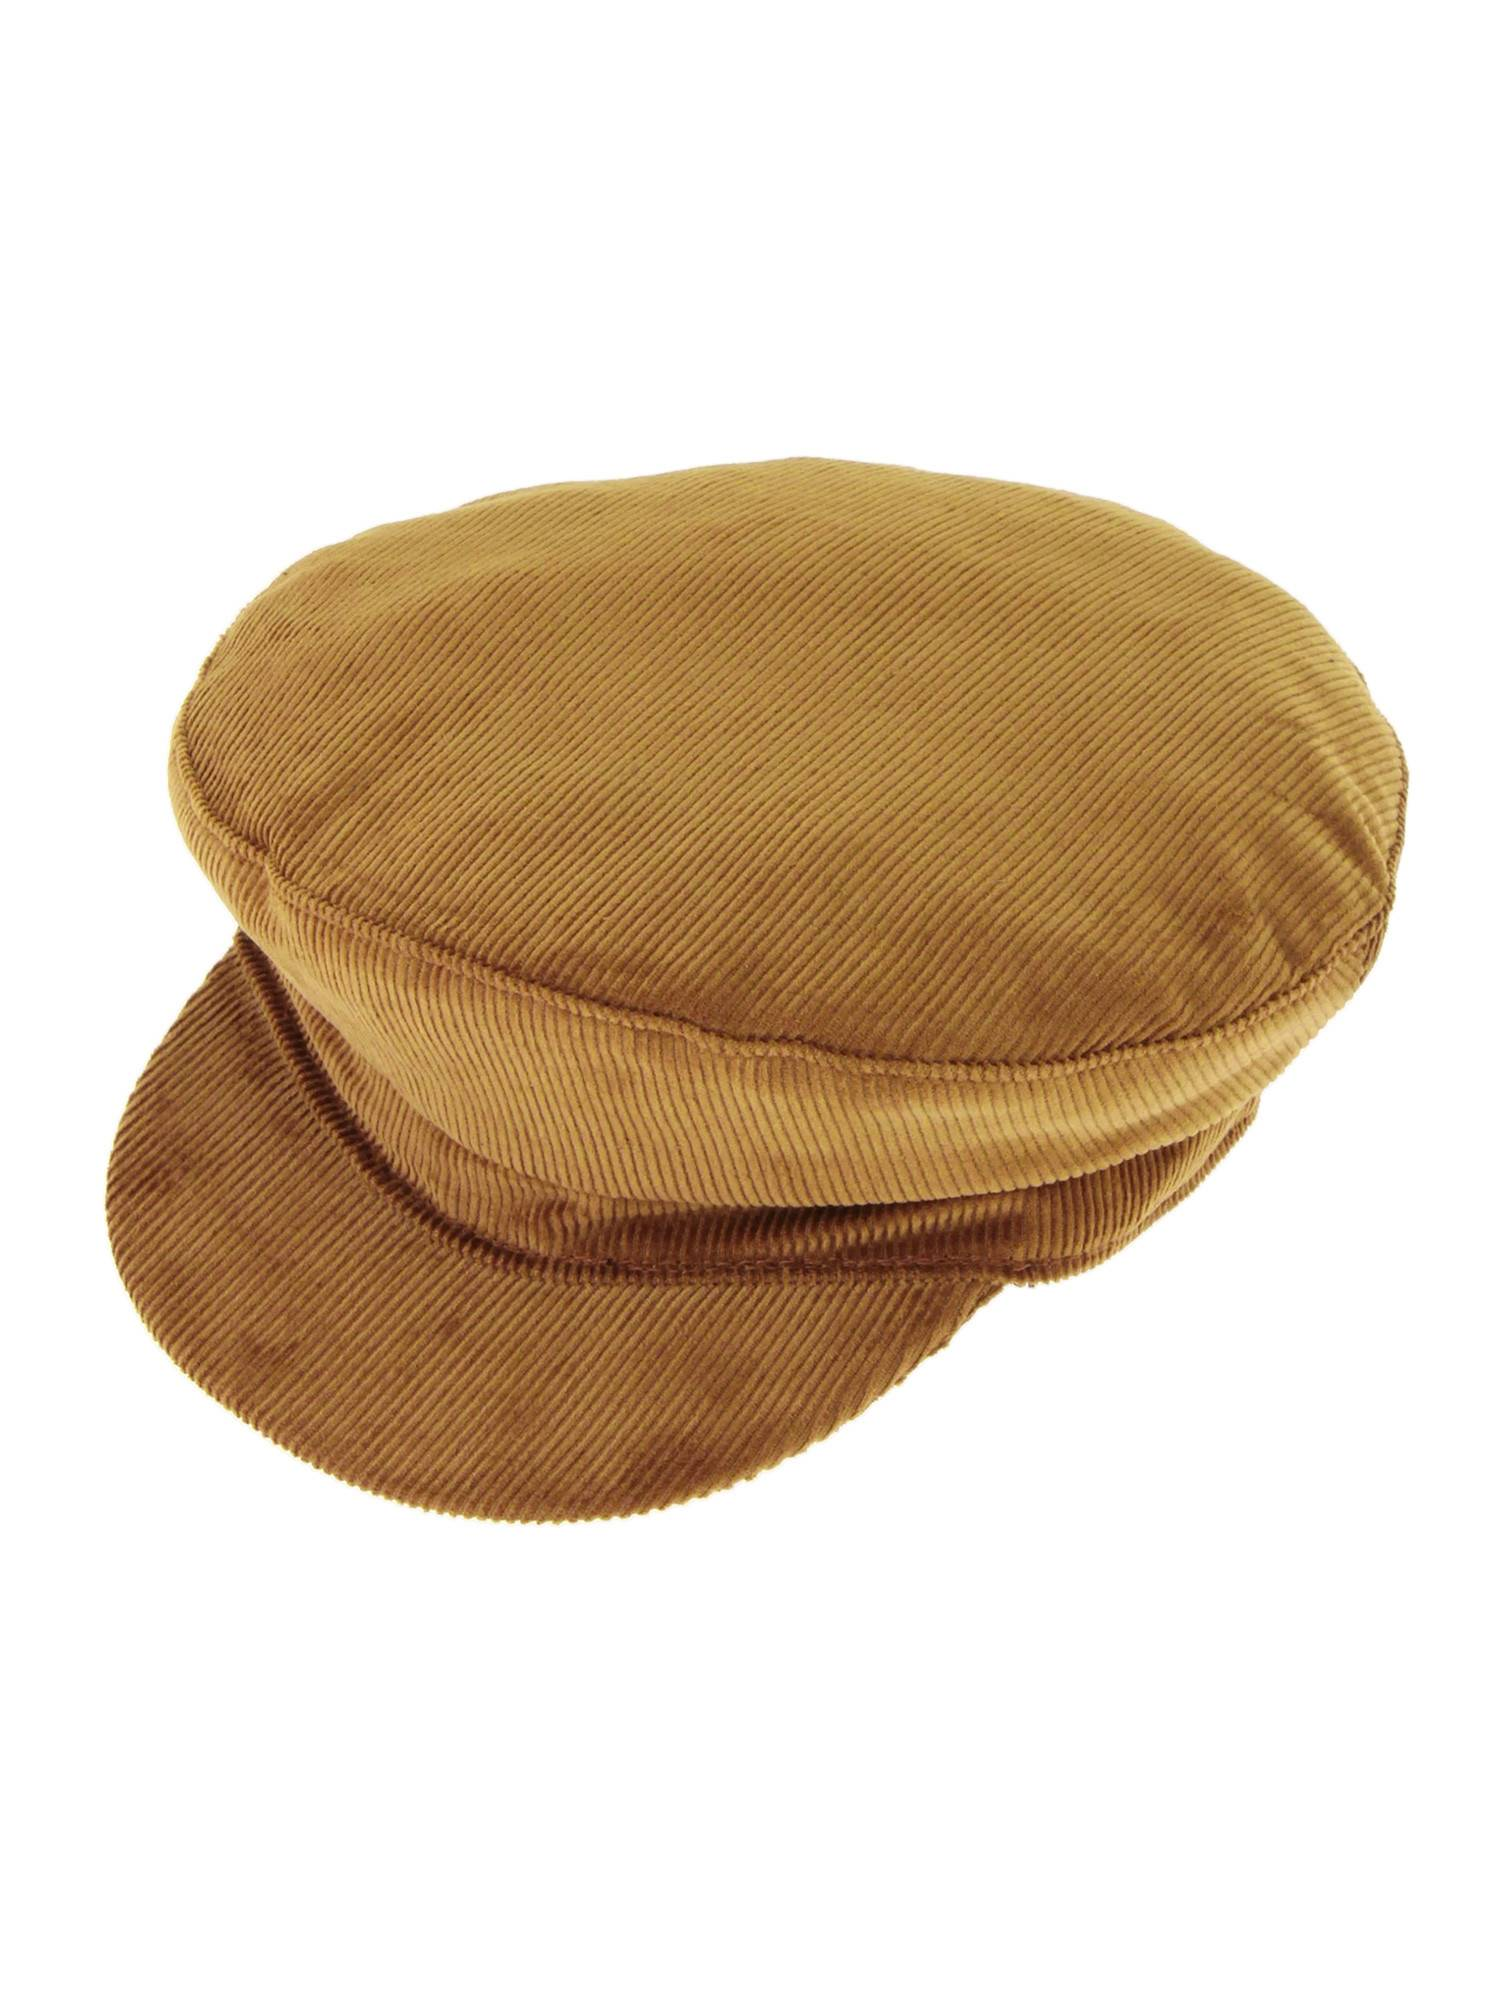 [NEW YORK HAT] CORDUROY DUTCH HAT